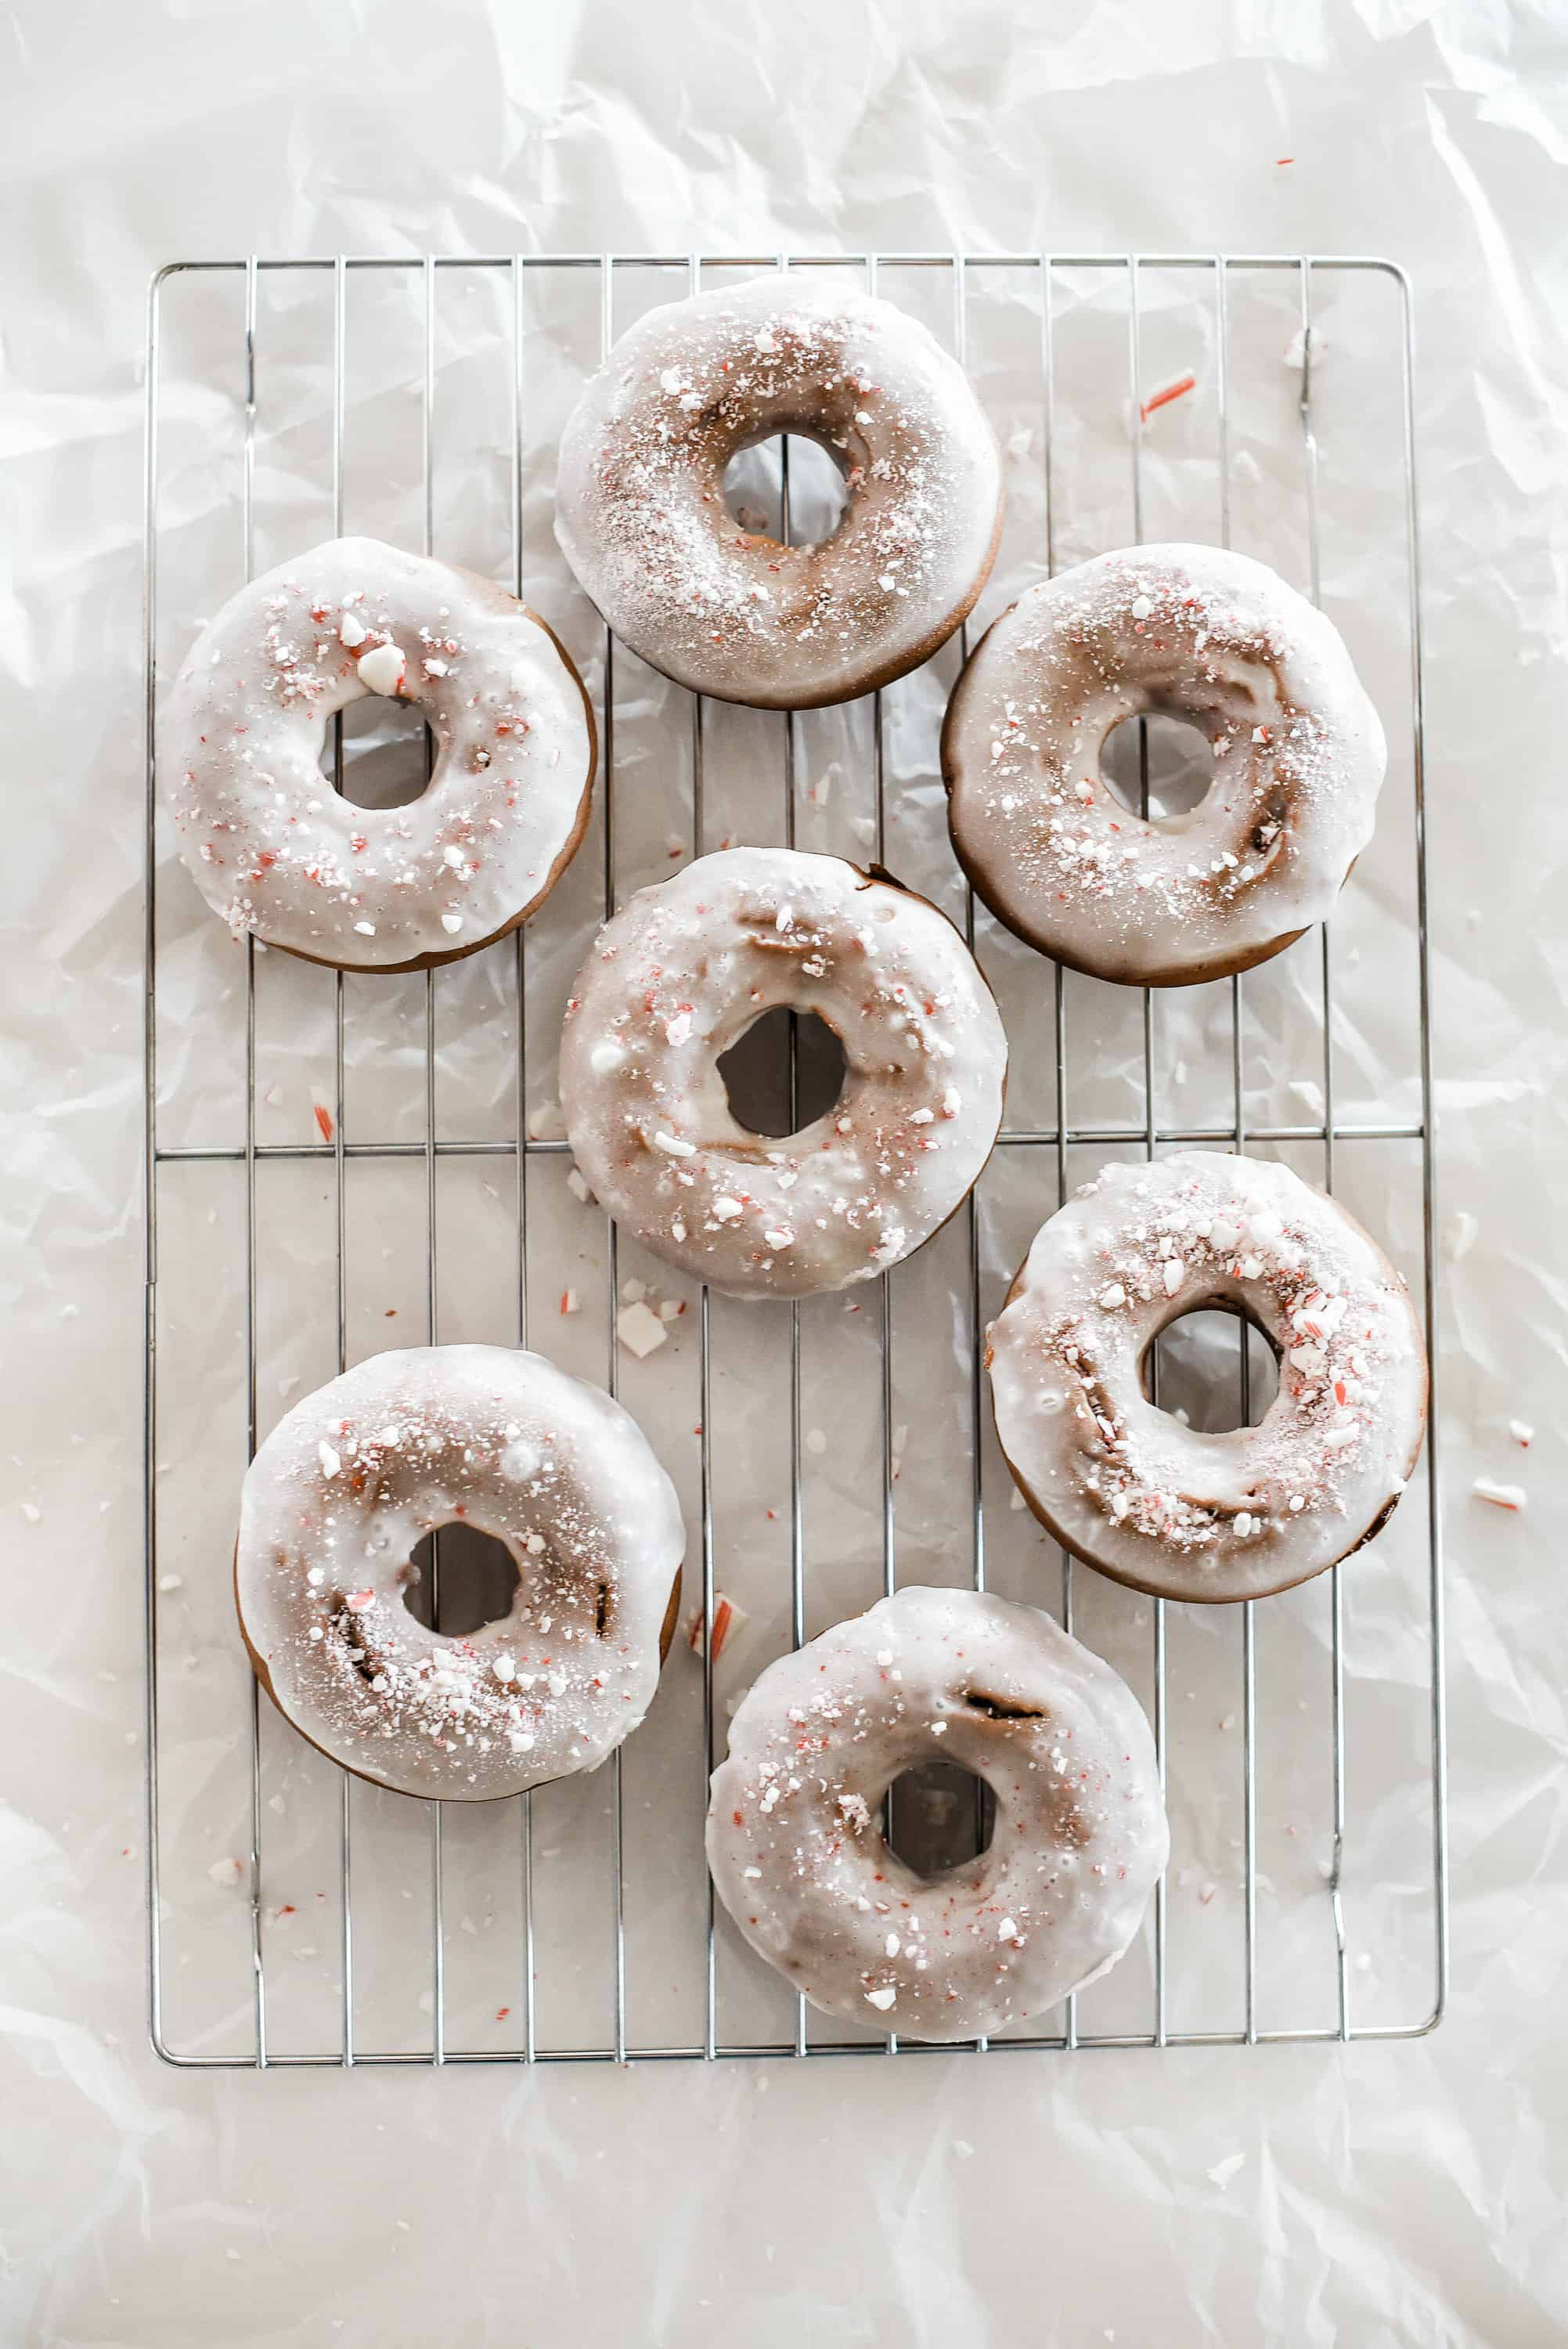 Best Christmas Desserts: Baked Peppermint Bark Christmas Donuts